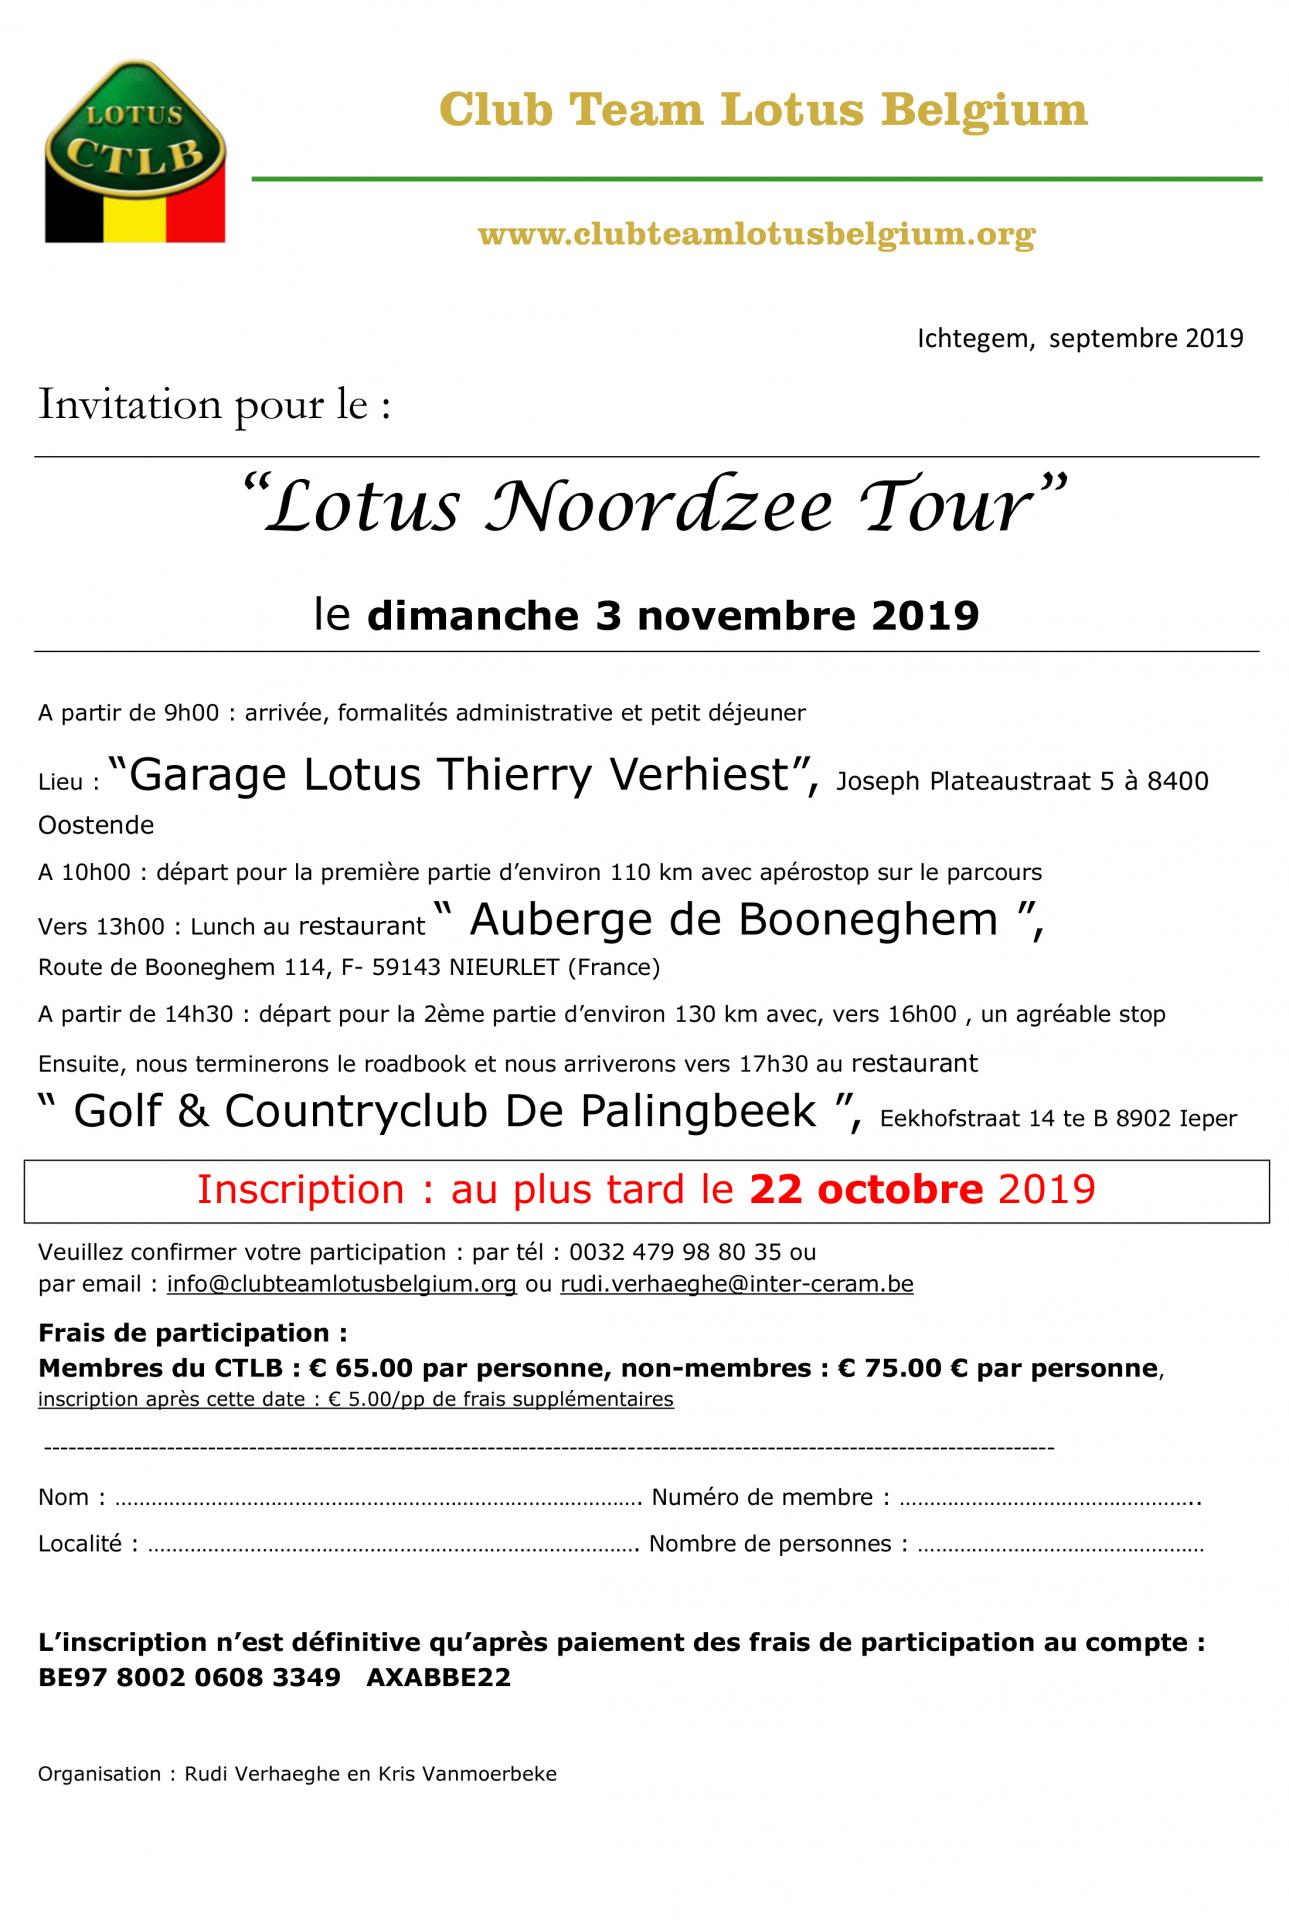 Invitation lotus noordzee tour 1